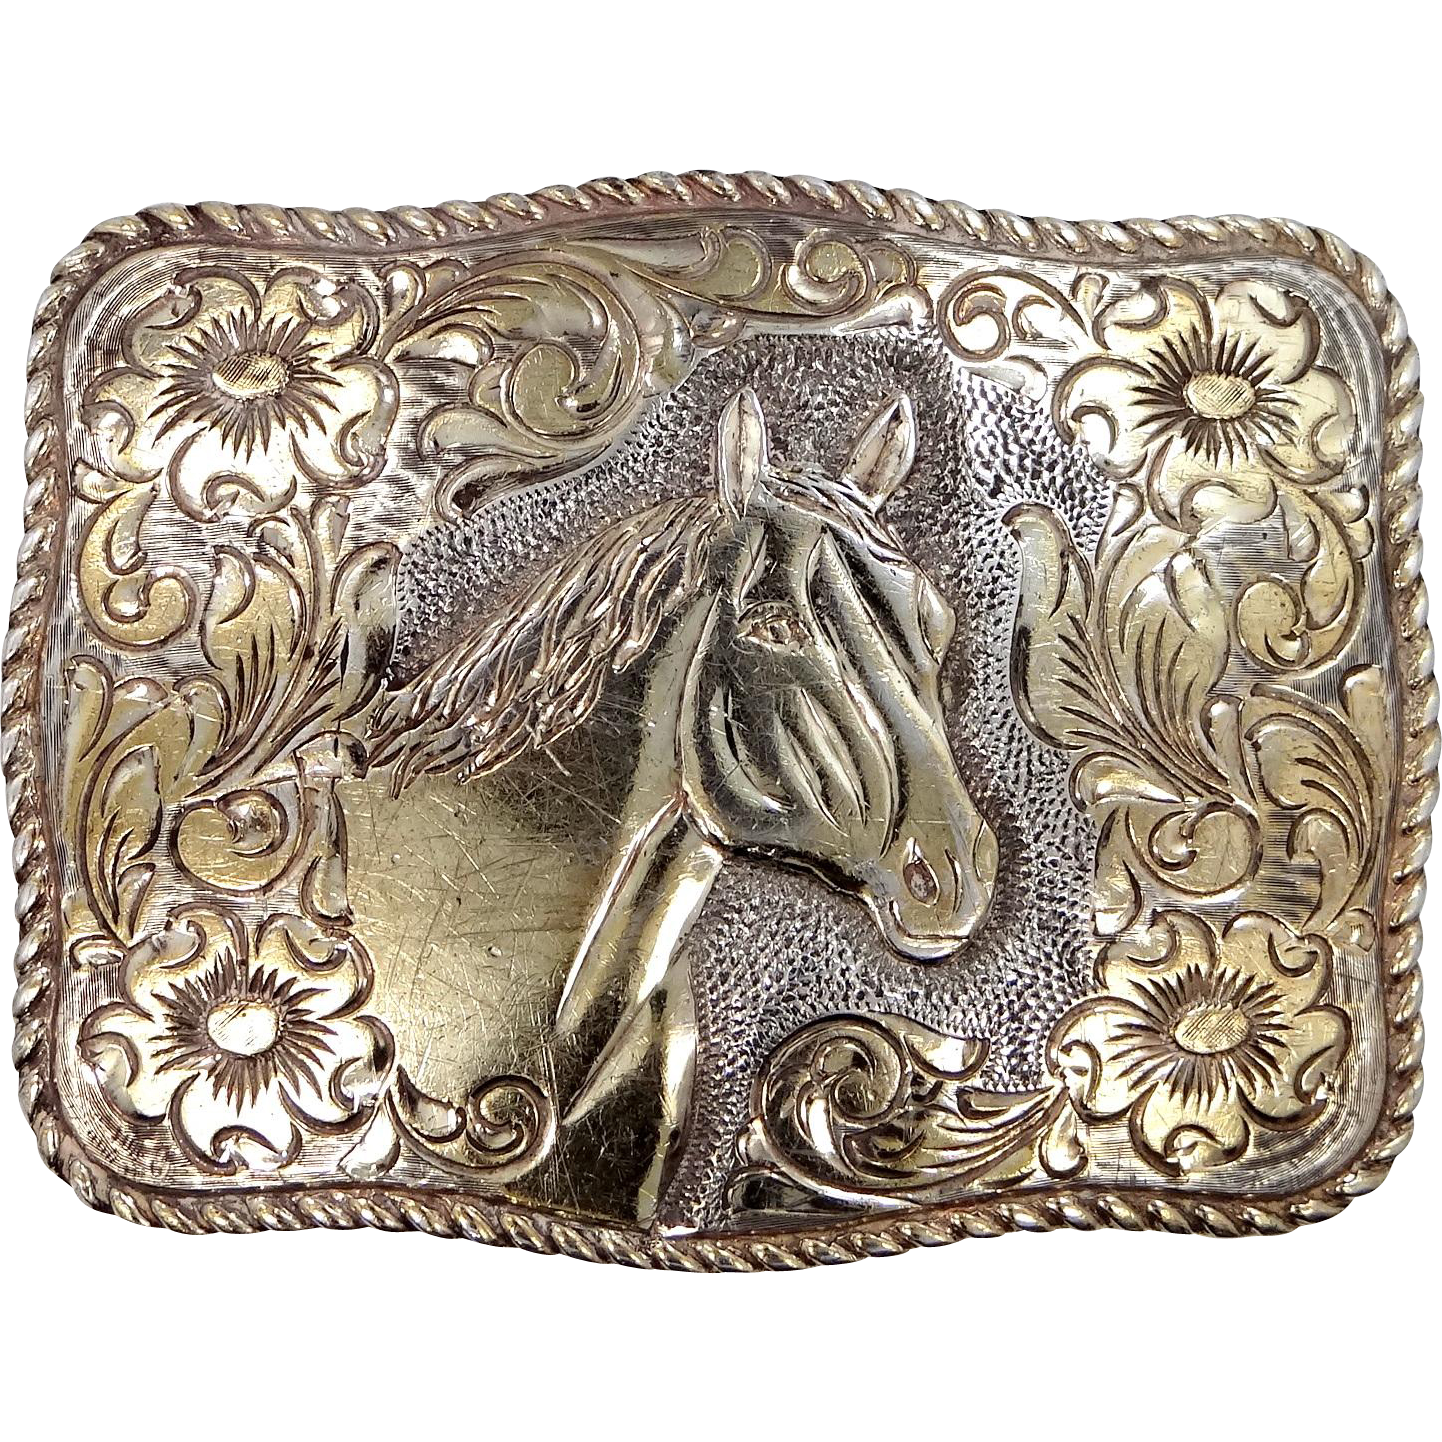 Crumrine San Carlos 22k Gold on Sterling Buckle w/Horse and Santa Ana Hallmark